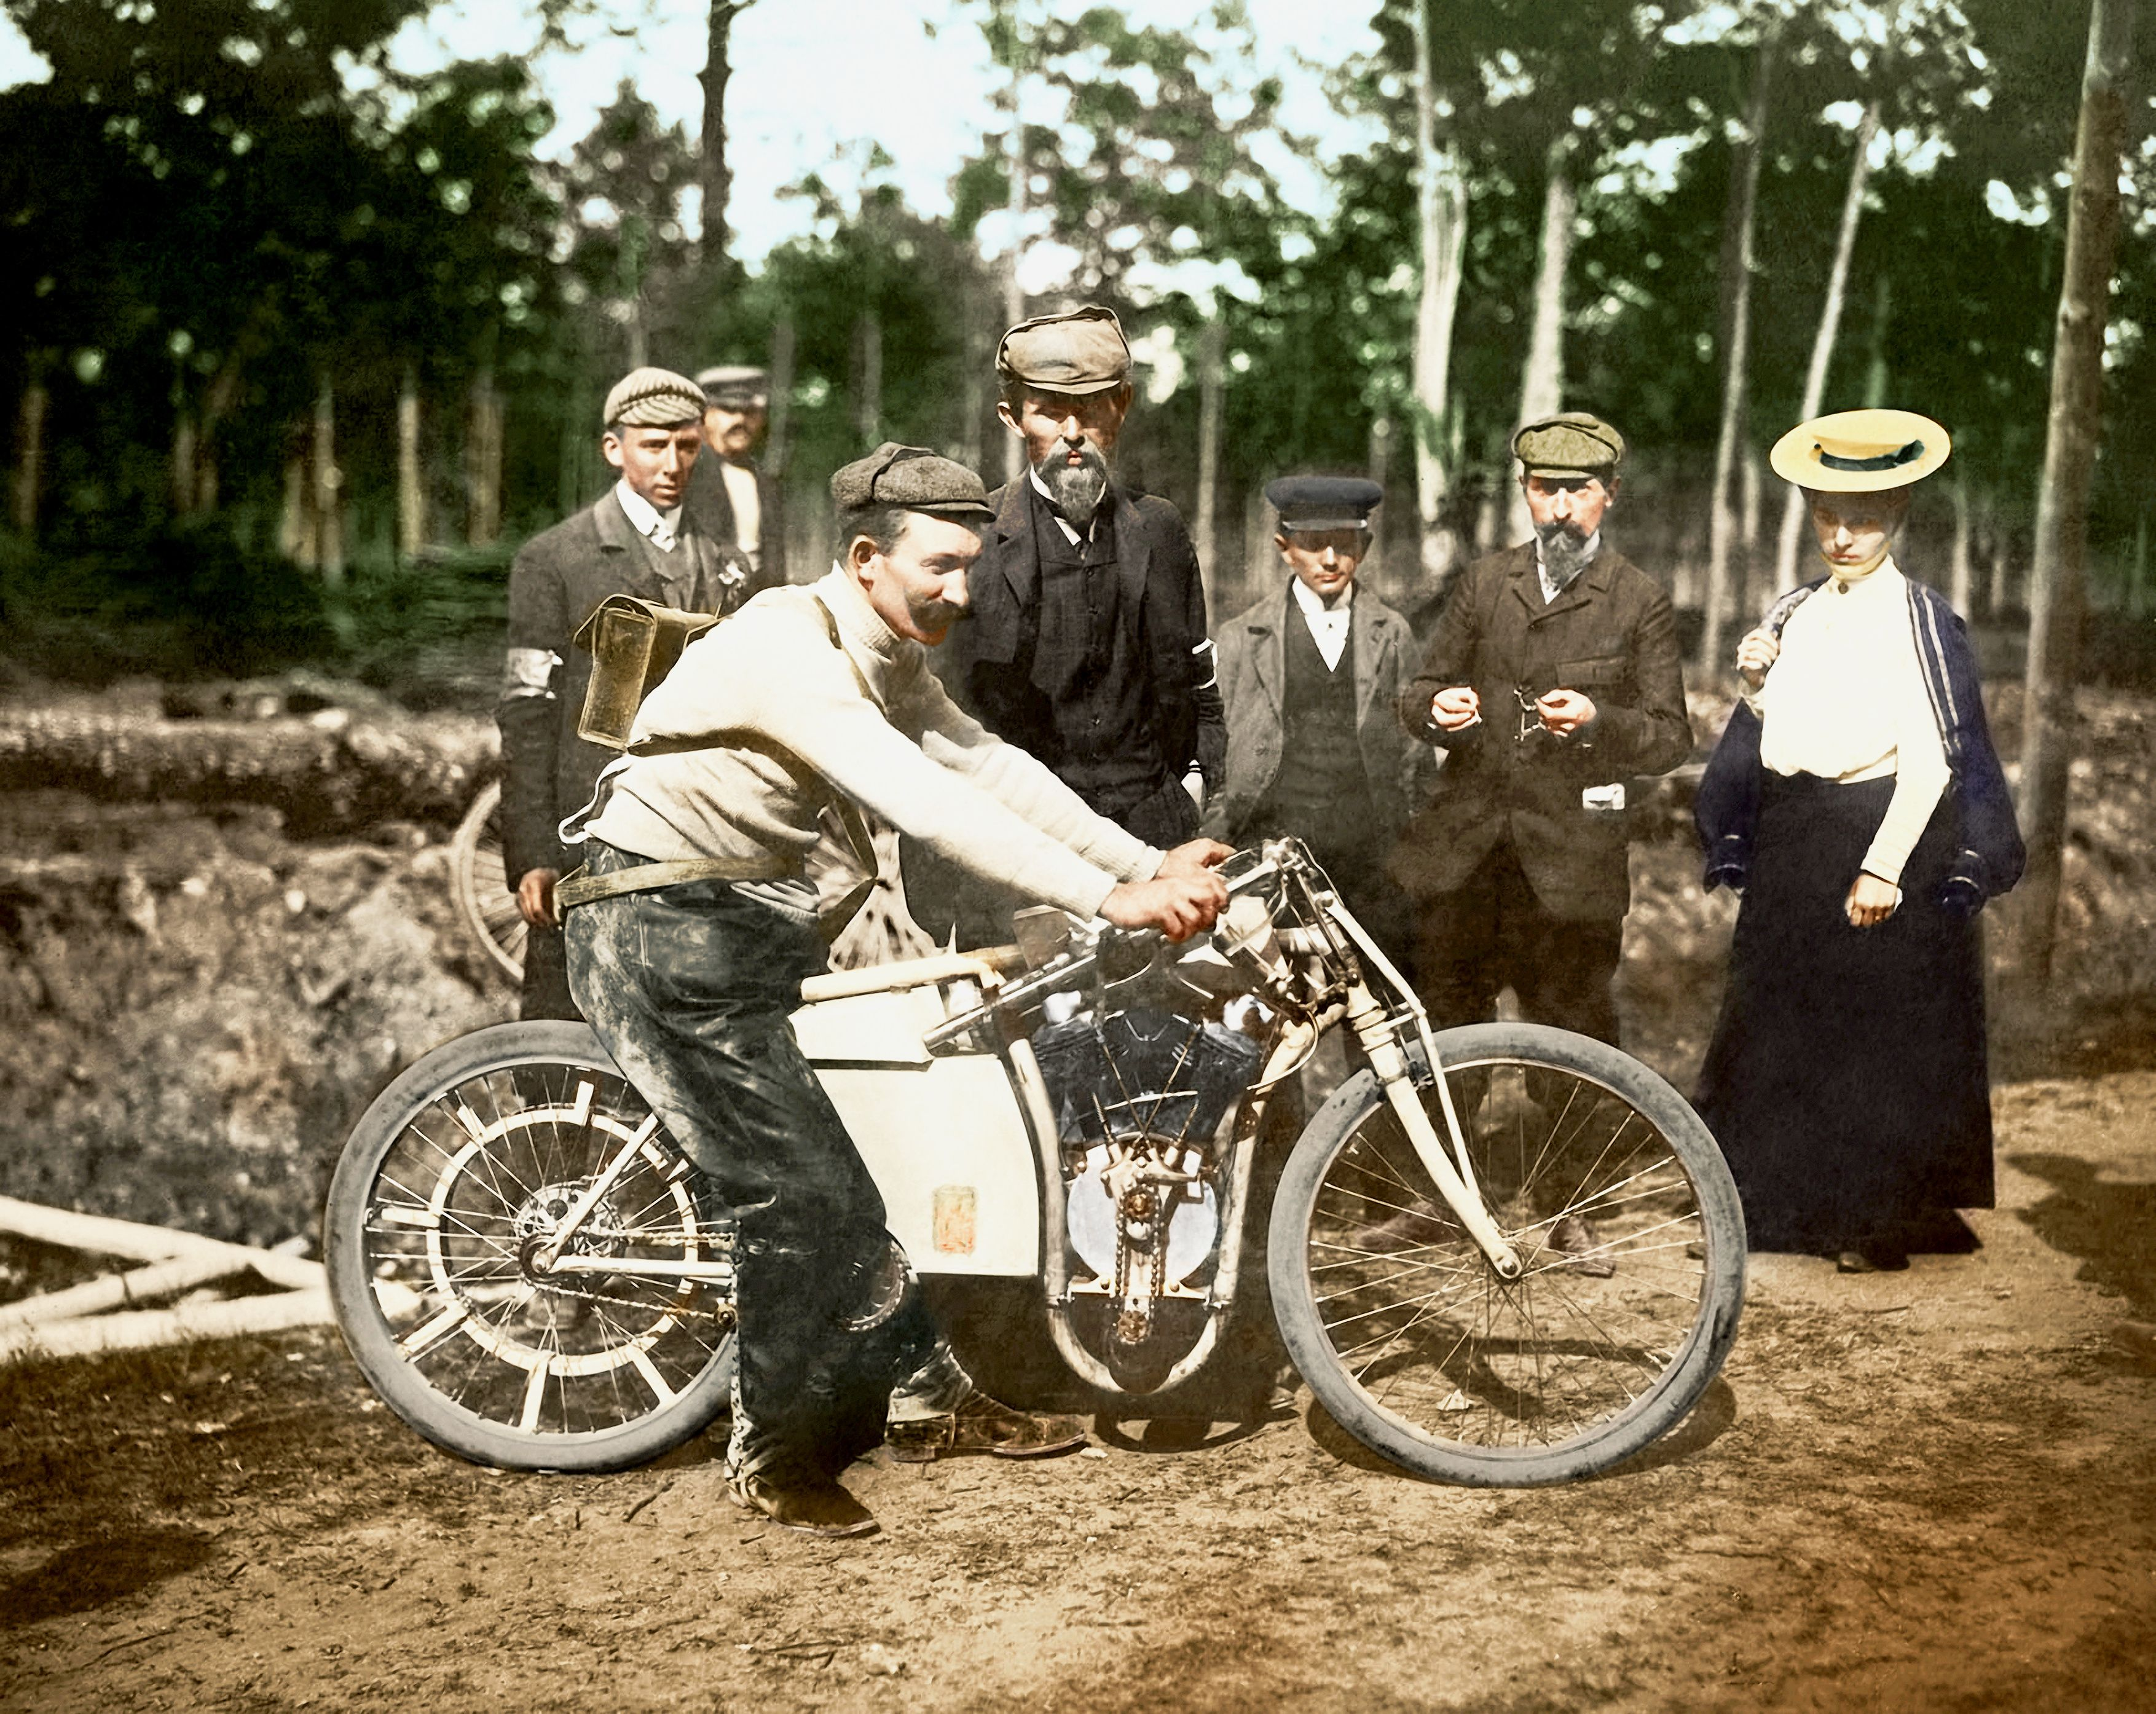 The triumph at Dourdan: Laurin & Klement won the motorcycle world championship 115 years ago - Image 2